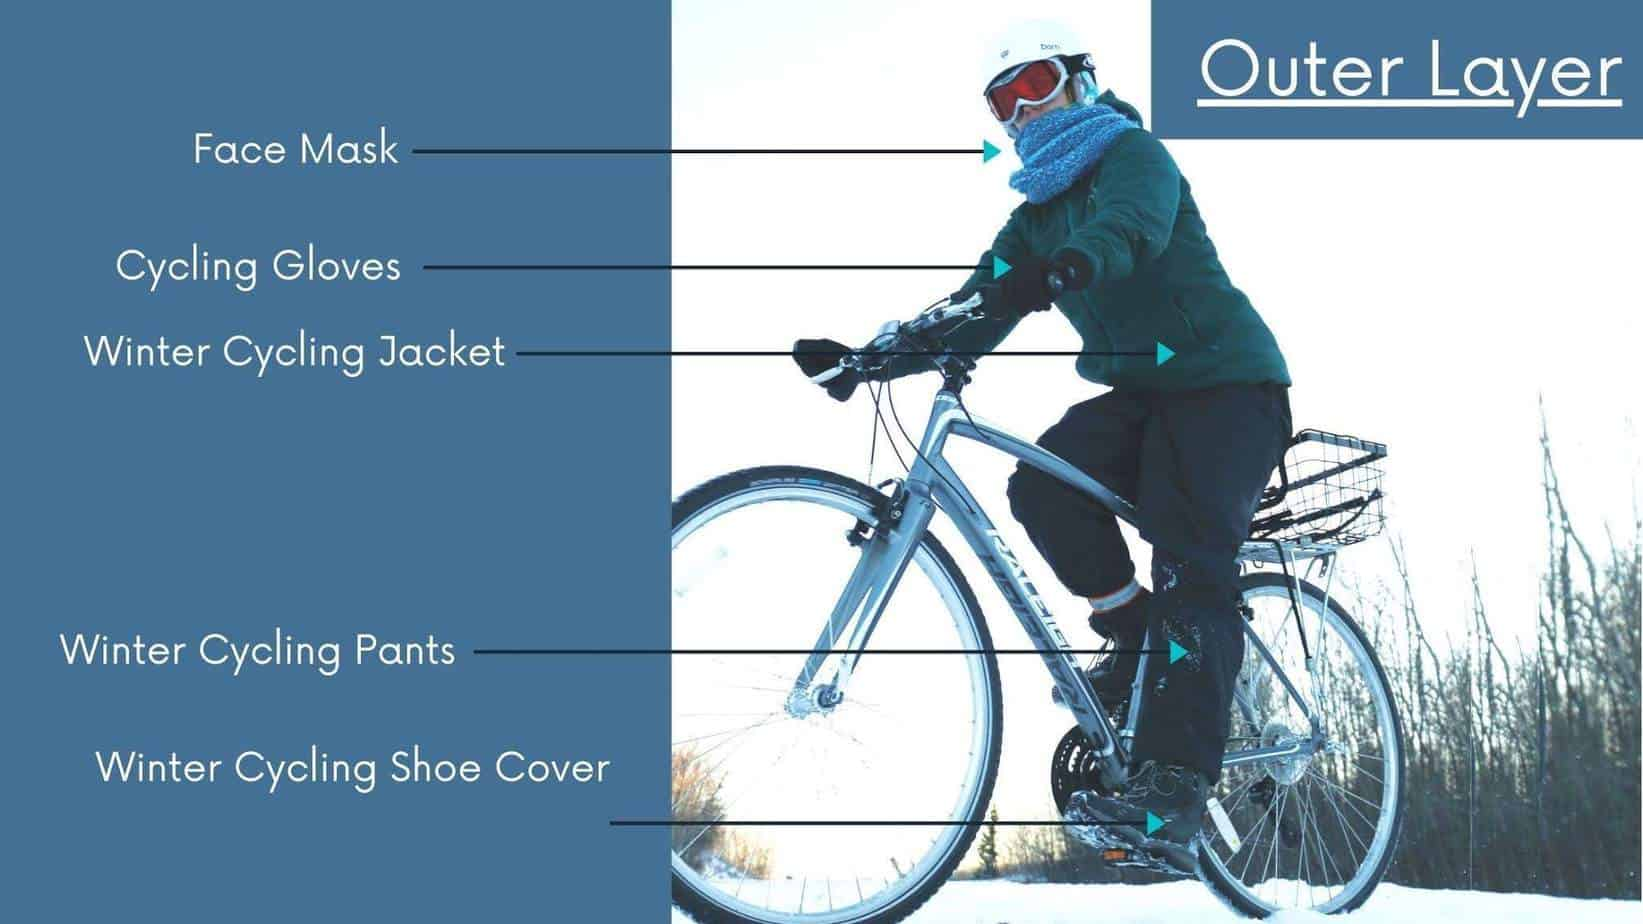 Outer layer Of winter cycling gear